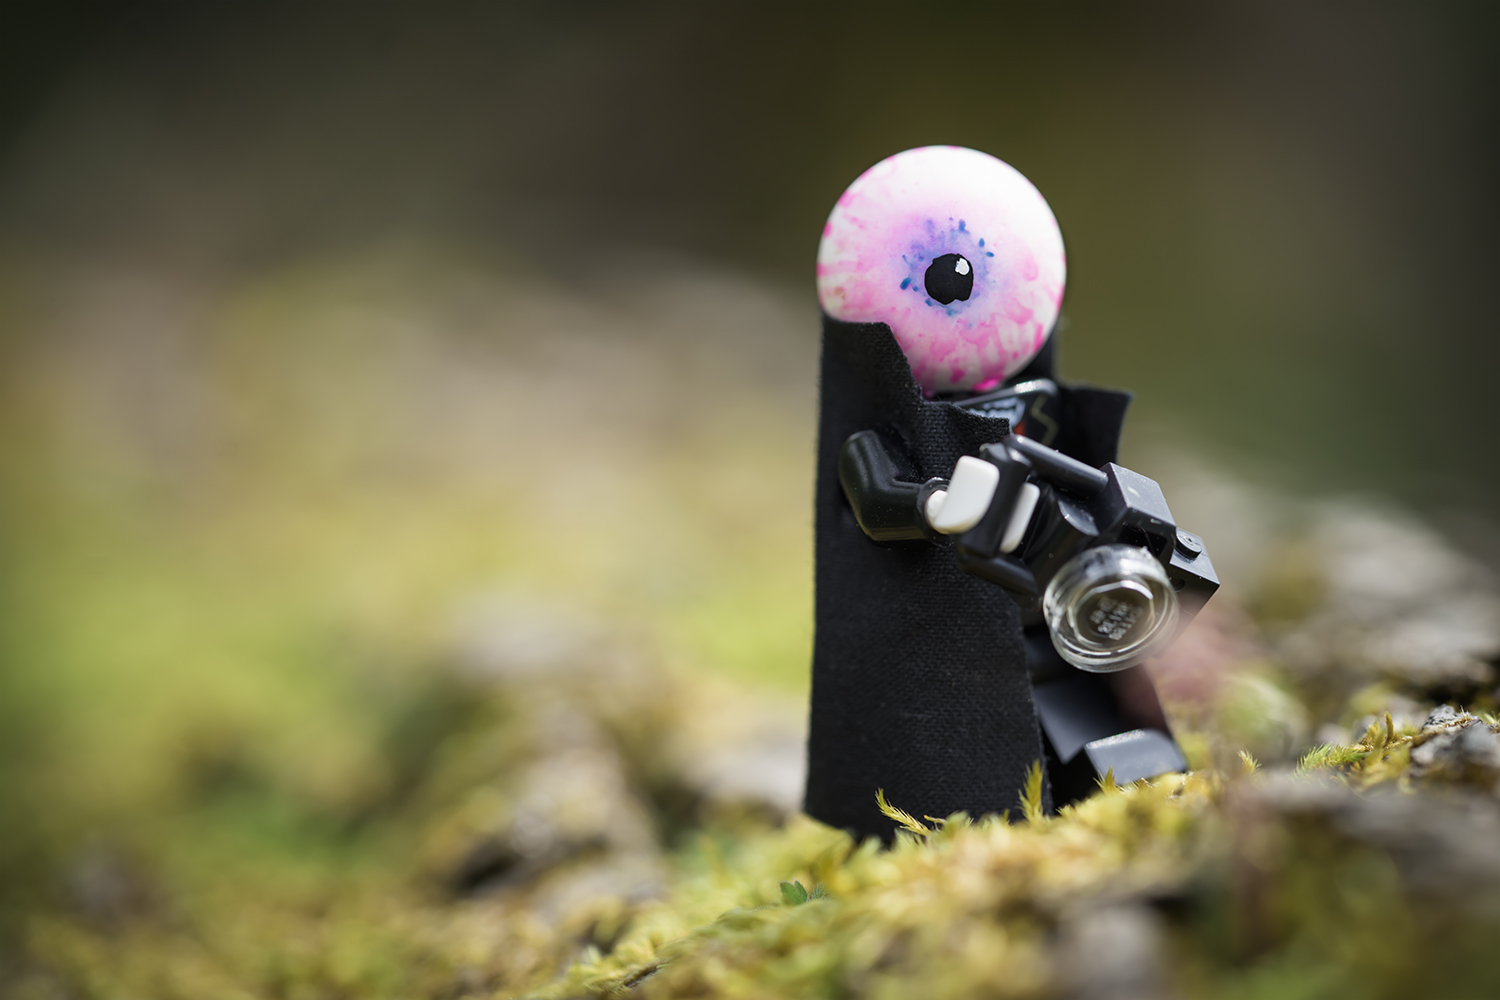 Custome LEGO mini figure with eyeball for a head holds a camera. Custom by Dennis Taylor, Photo by Shelly Corbett